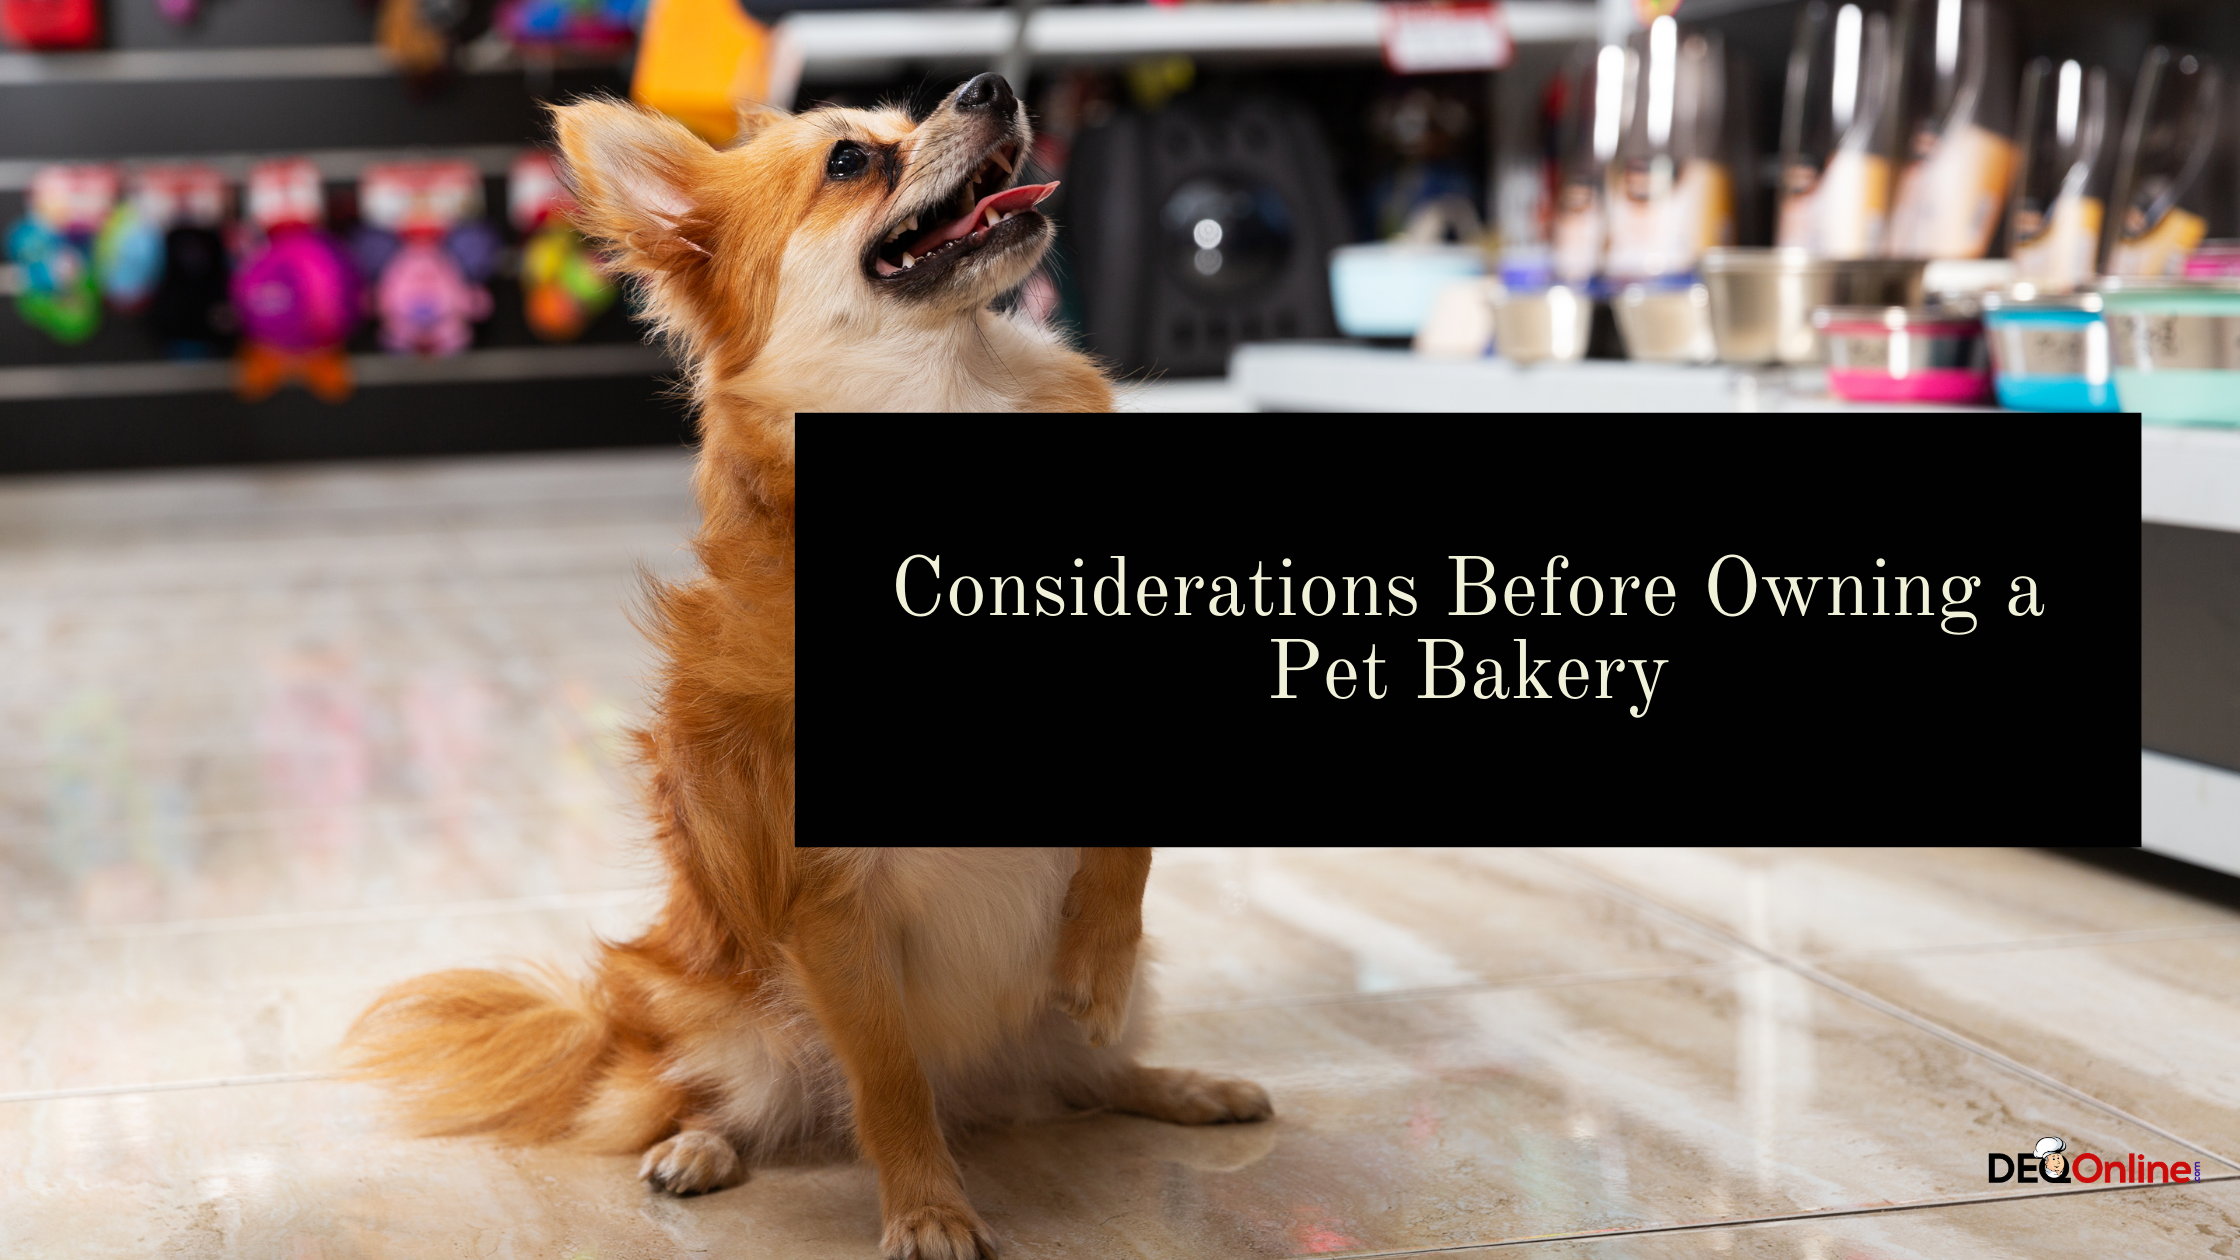 Considerations Before Owning a Pet Bakery